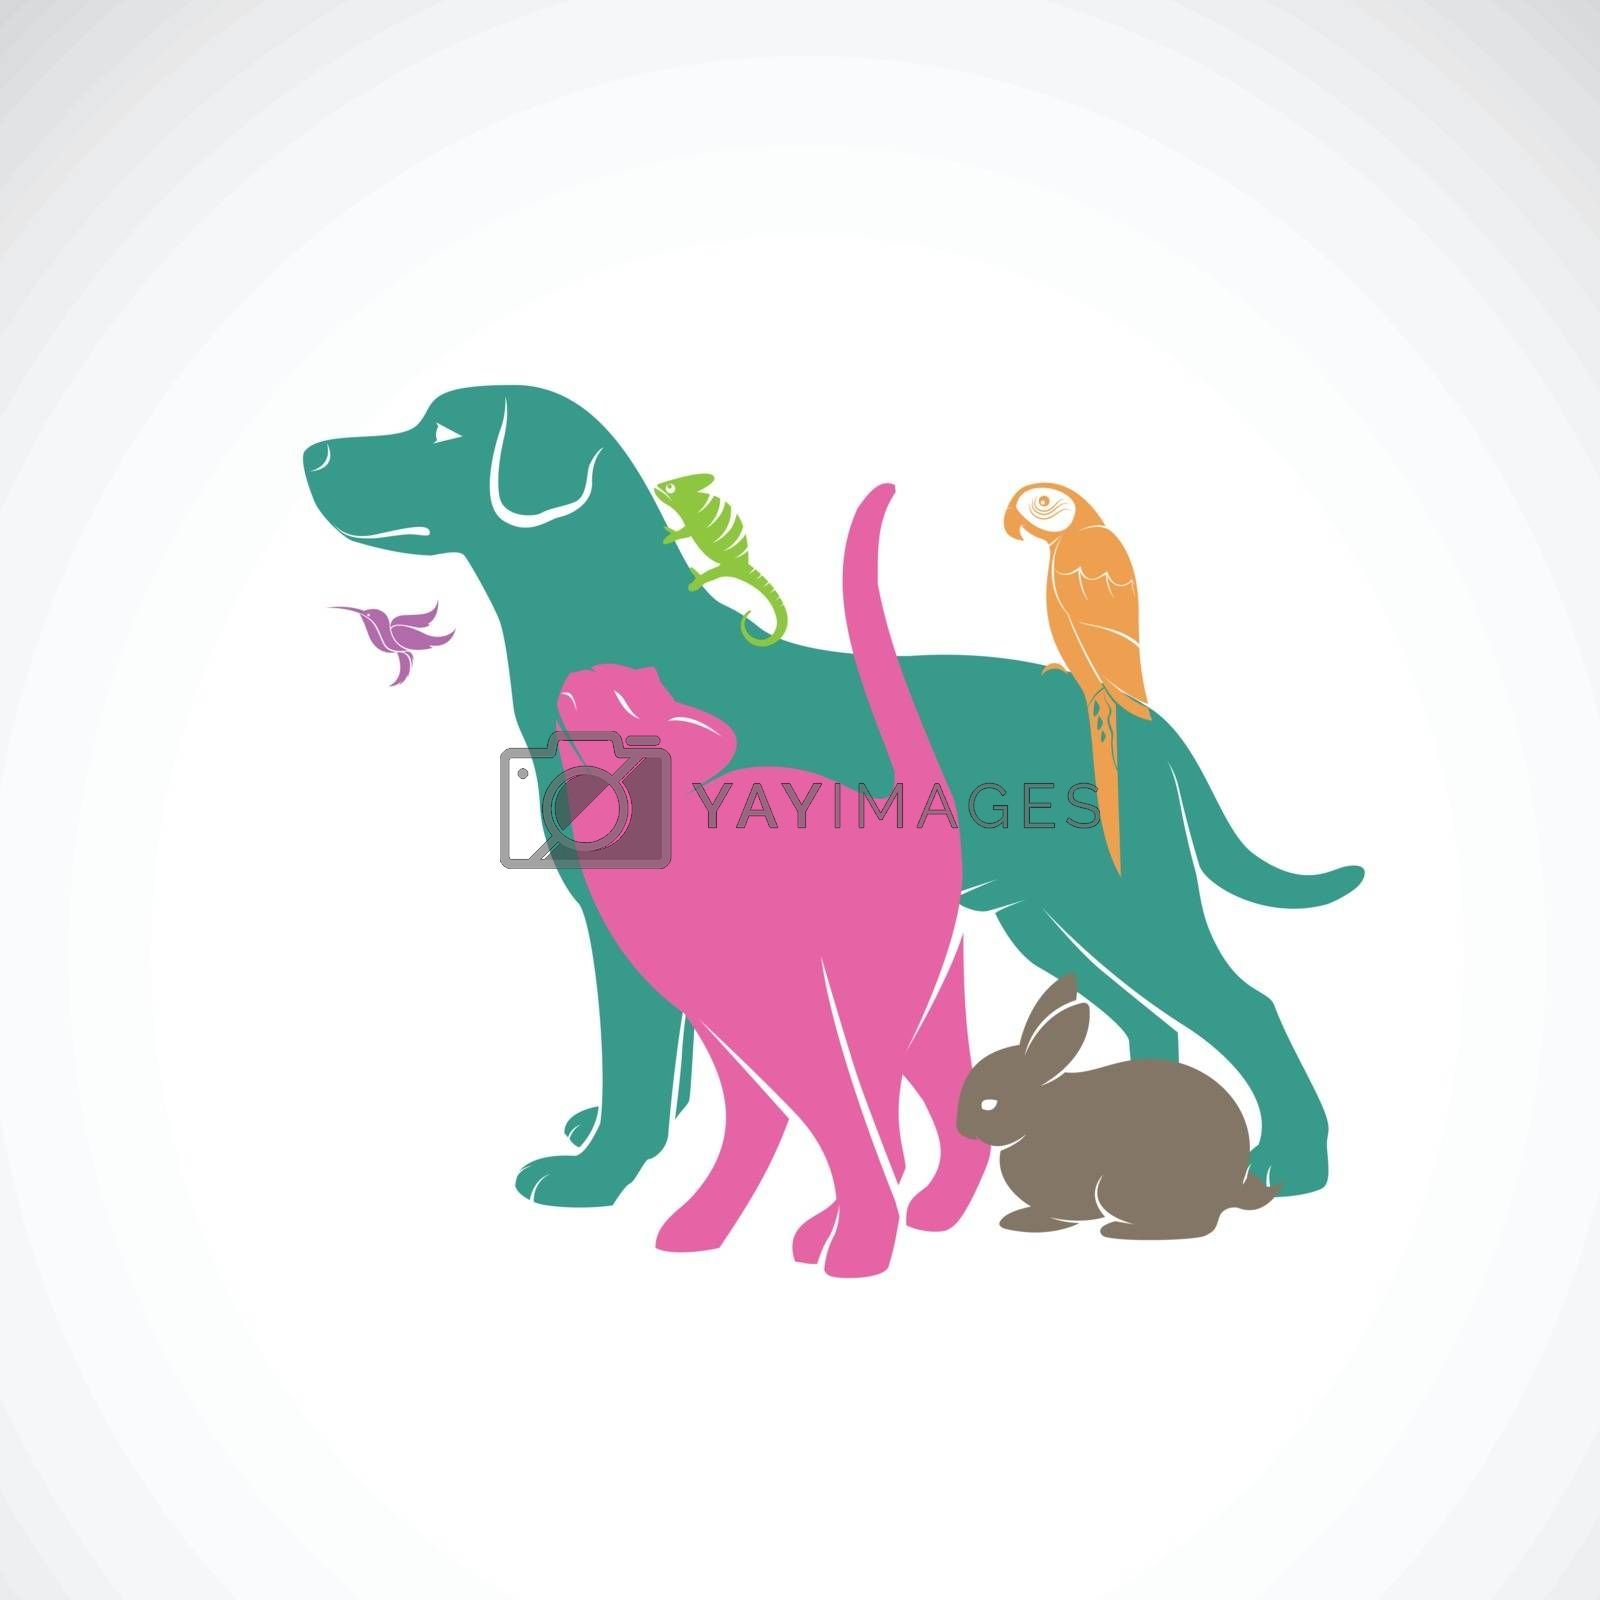 Vector group of pets - Dog, Cat, Parrot, Chameleon, Rabbit, Hummingbird isolated on white background., Animals set. Vector pets for your design. Easy editable layered vector illustration.